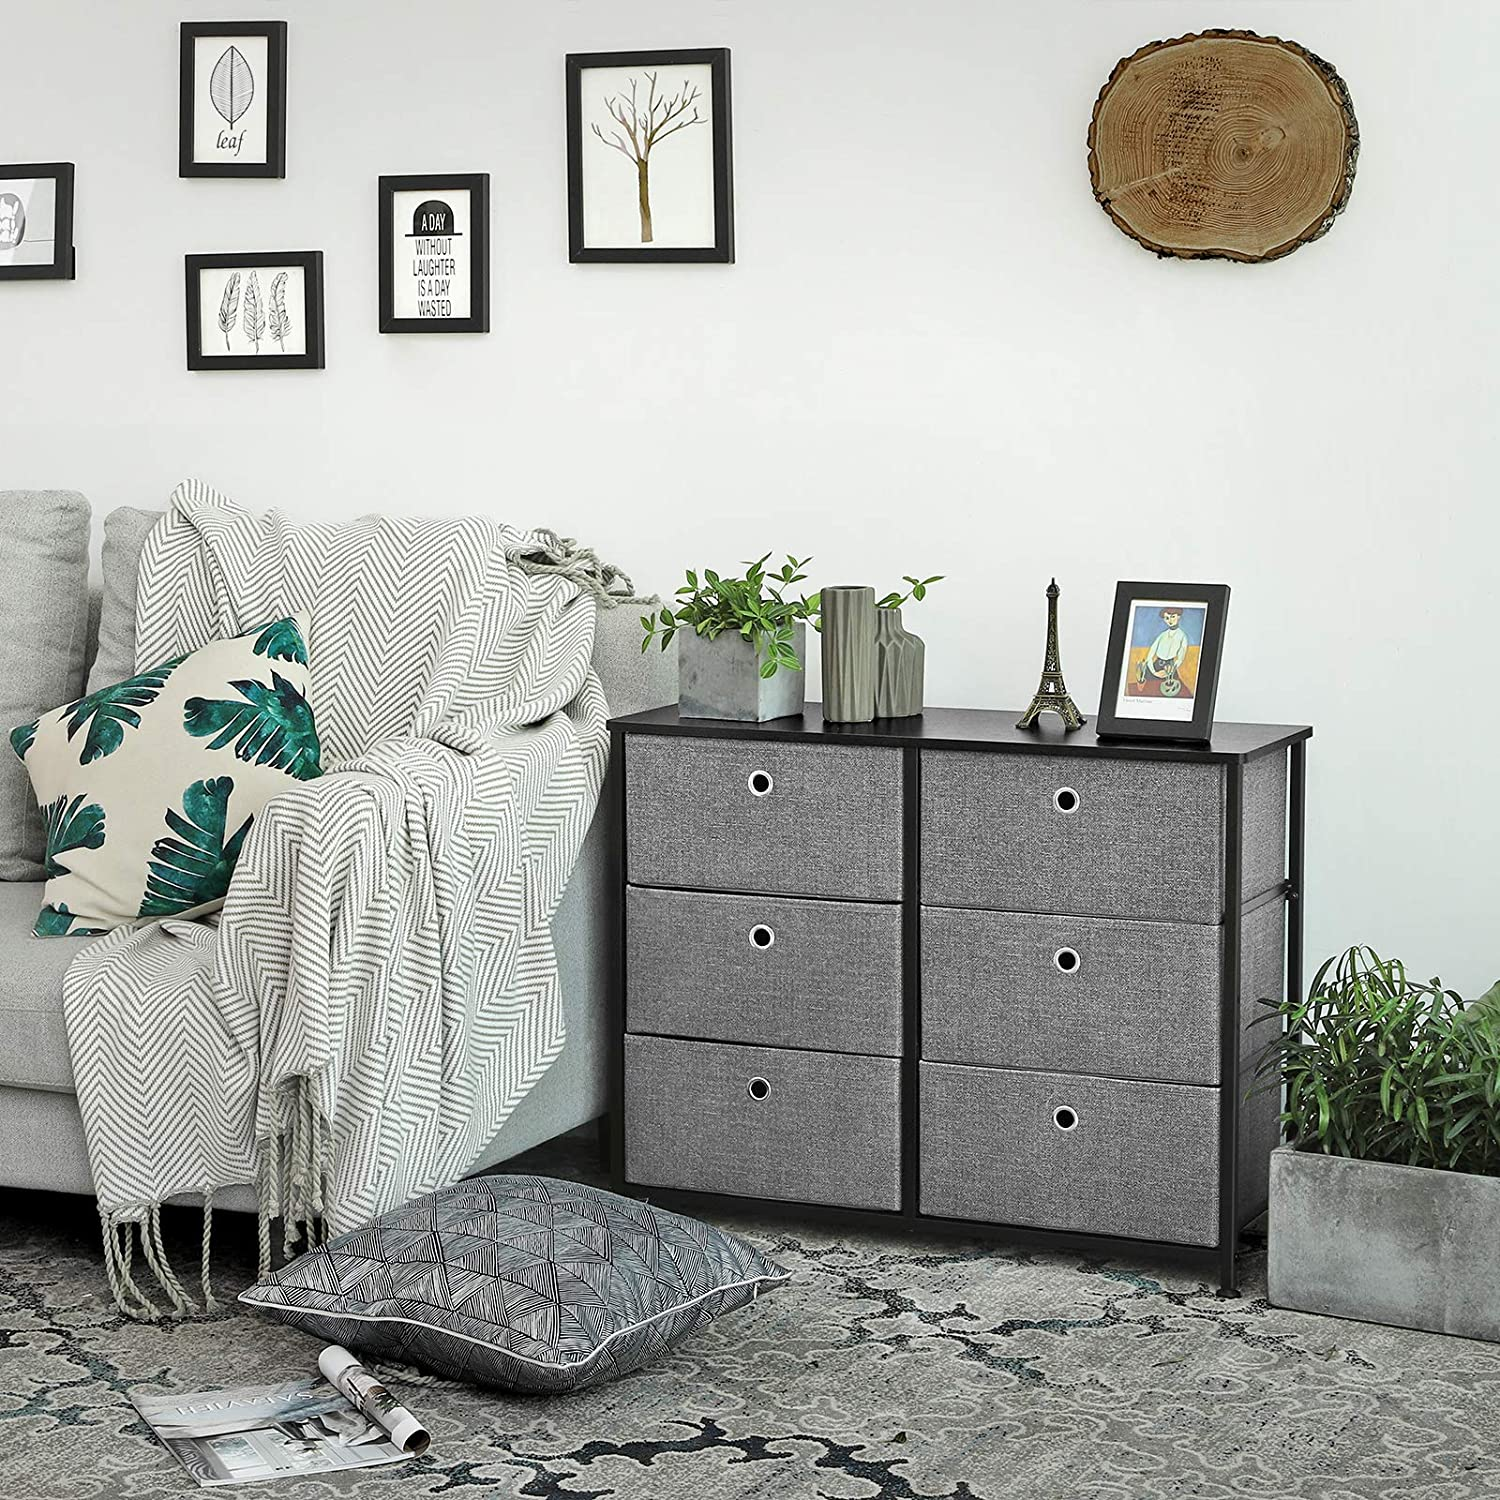 SONGMICS 3-Tier Wide Dresser, Storage Unit with 6 Easy Pull Fabric Drawers, Metal Frame, and Wooden Tabletop, for Closet, Nursery, Hallway, 31.5 x 11.8 x 24.8 Inches, Gray ULTS23G: Furniture & Decor